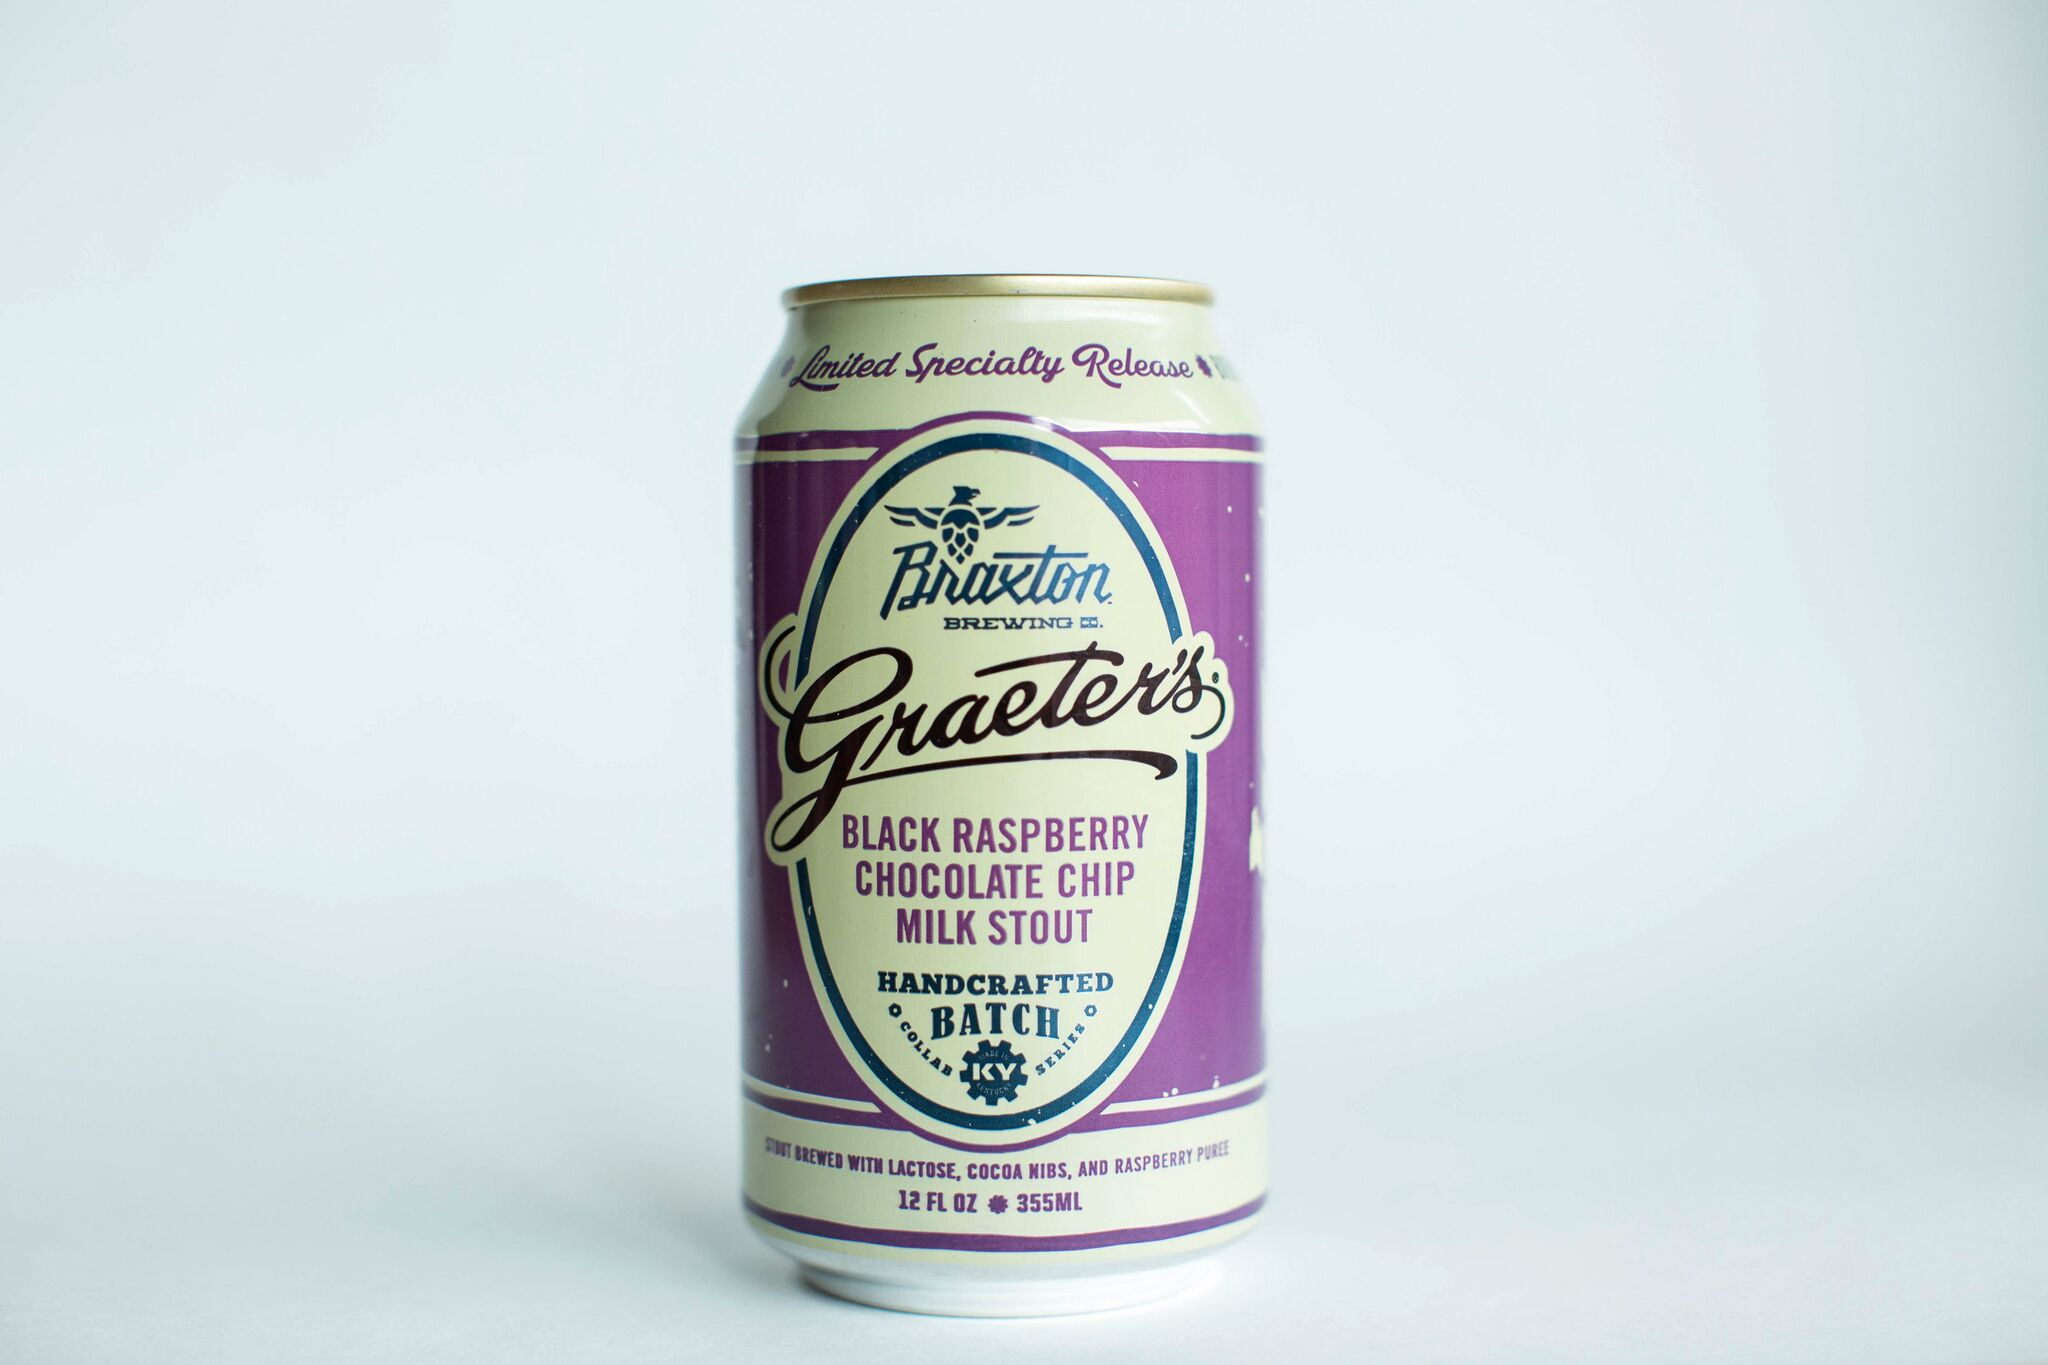 Braxton Brewing Co.: Graeter's Black Raspberry Chocolate Chip Milk Stout